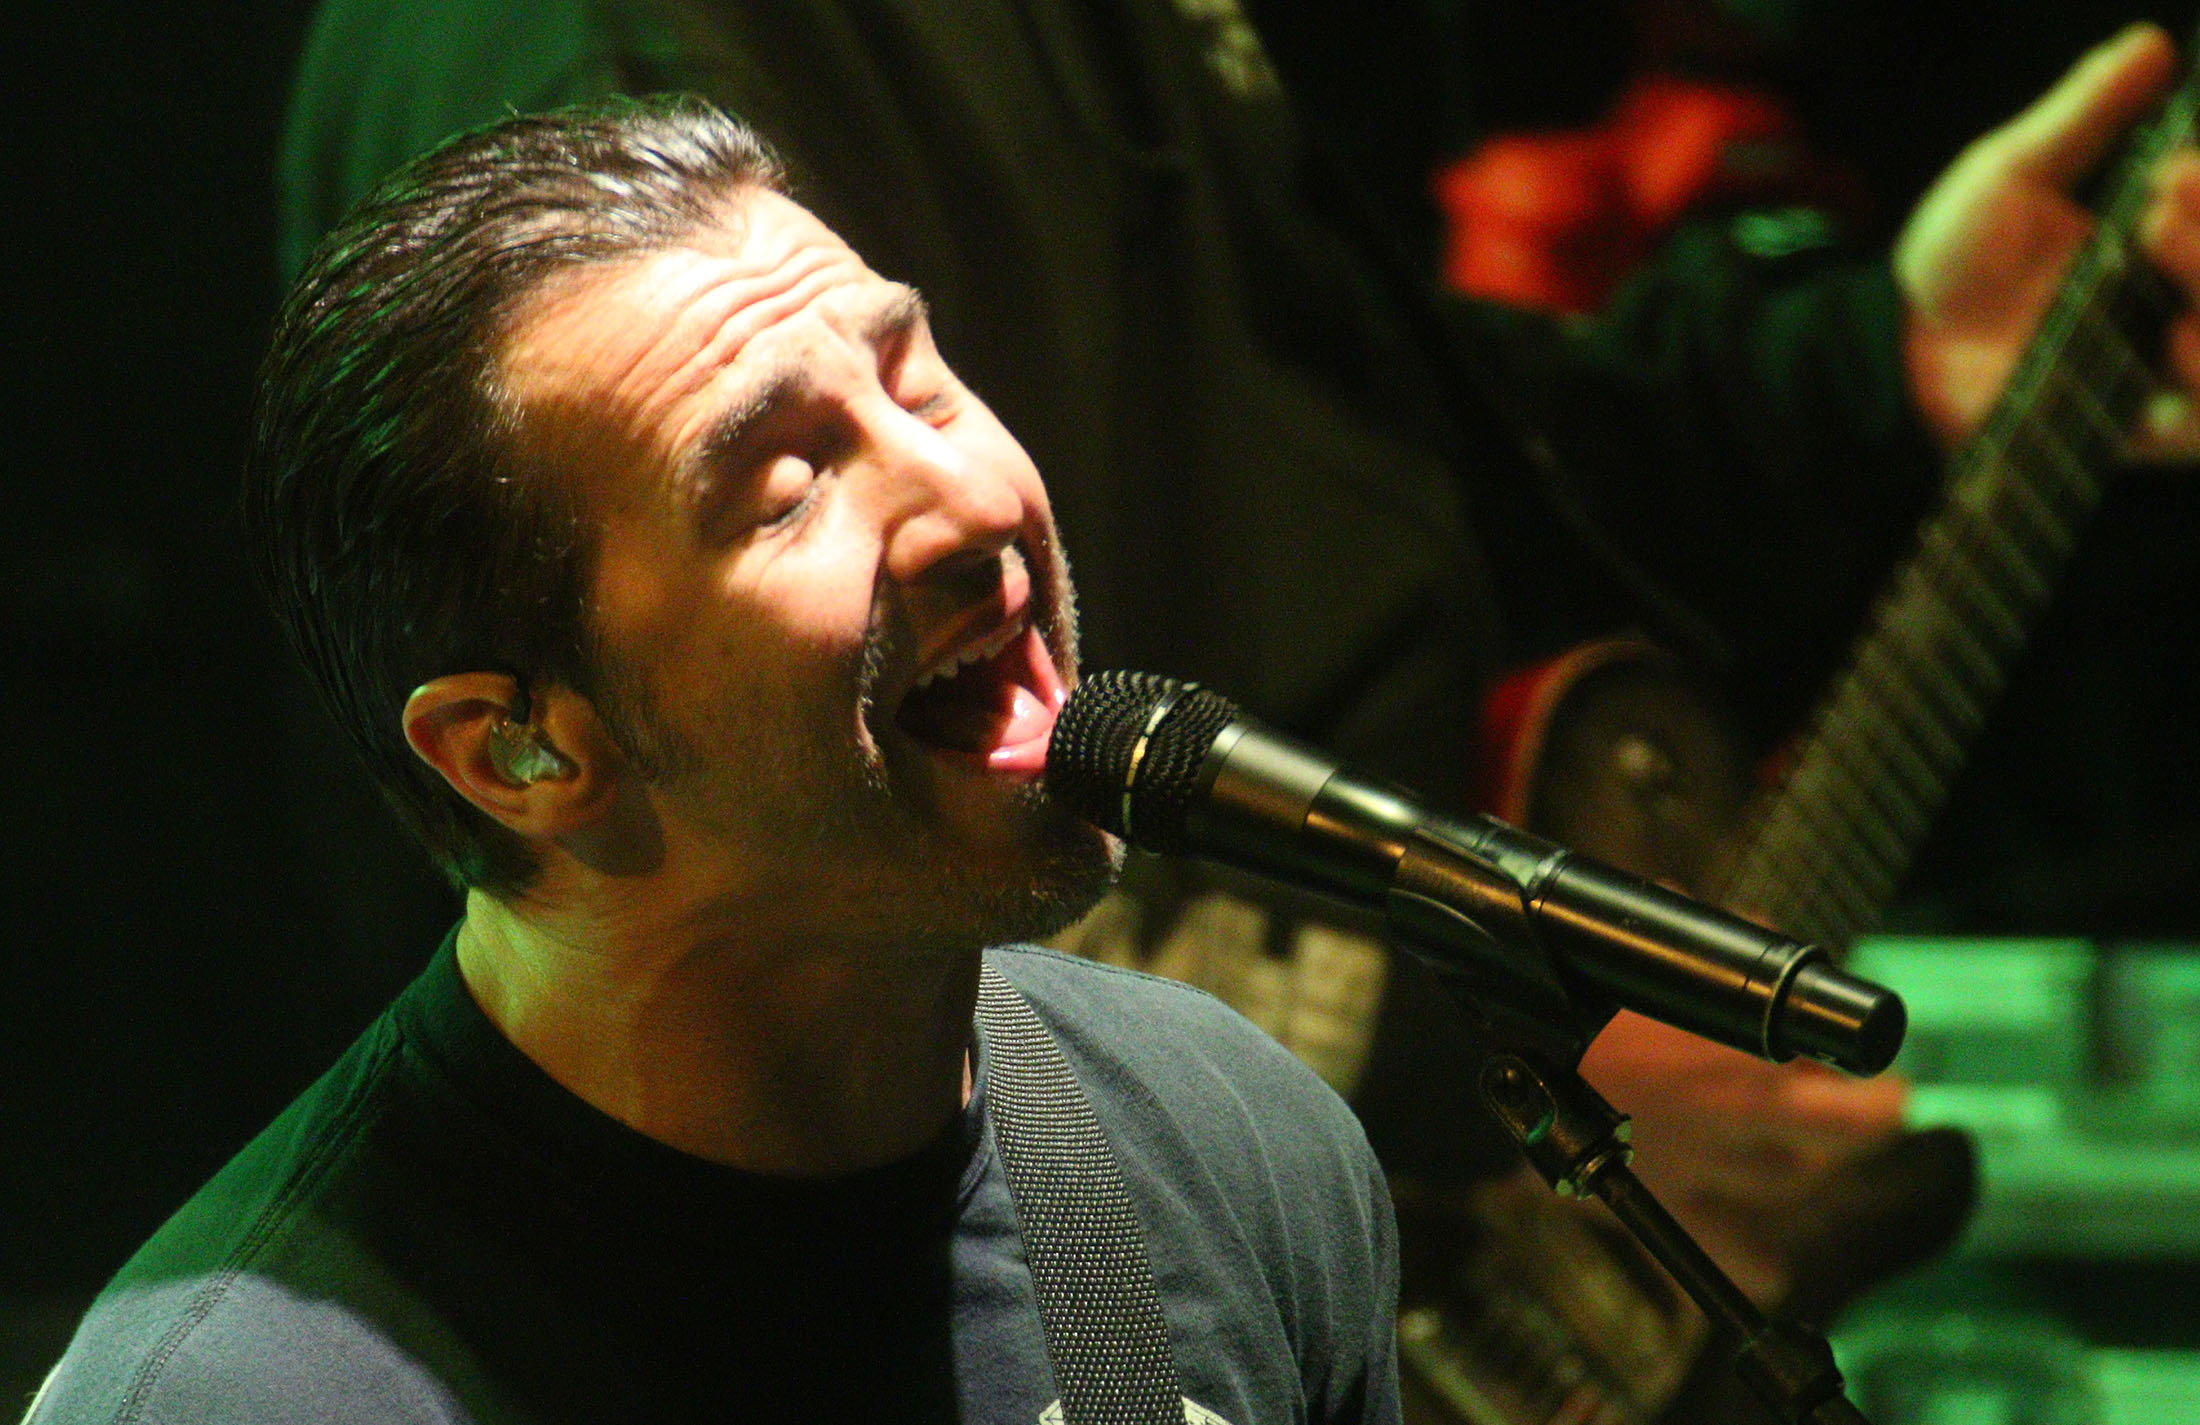 News-Journal/JIM TILLER   Lead singer Sully Erna from the band Godsmack belts out a song at the Full Moon Saloon lot Saturday night where the crowd grew so large that  Main Street had to be closed durning the concert.